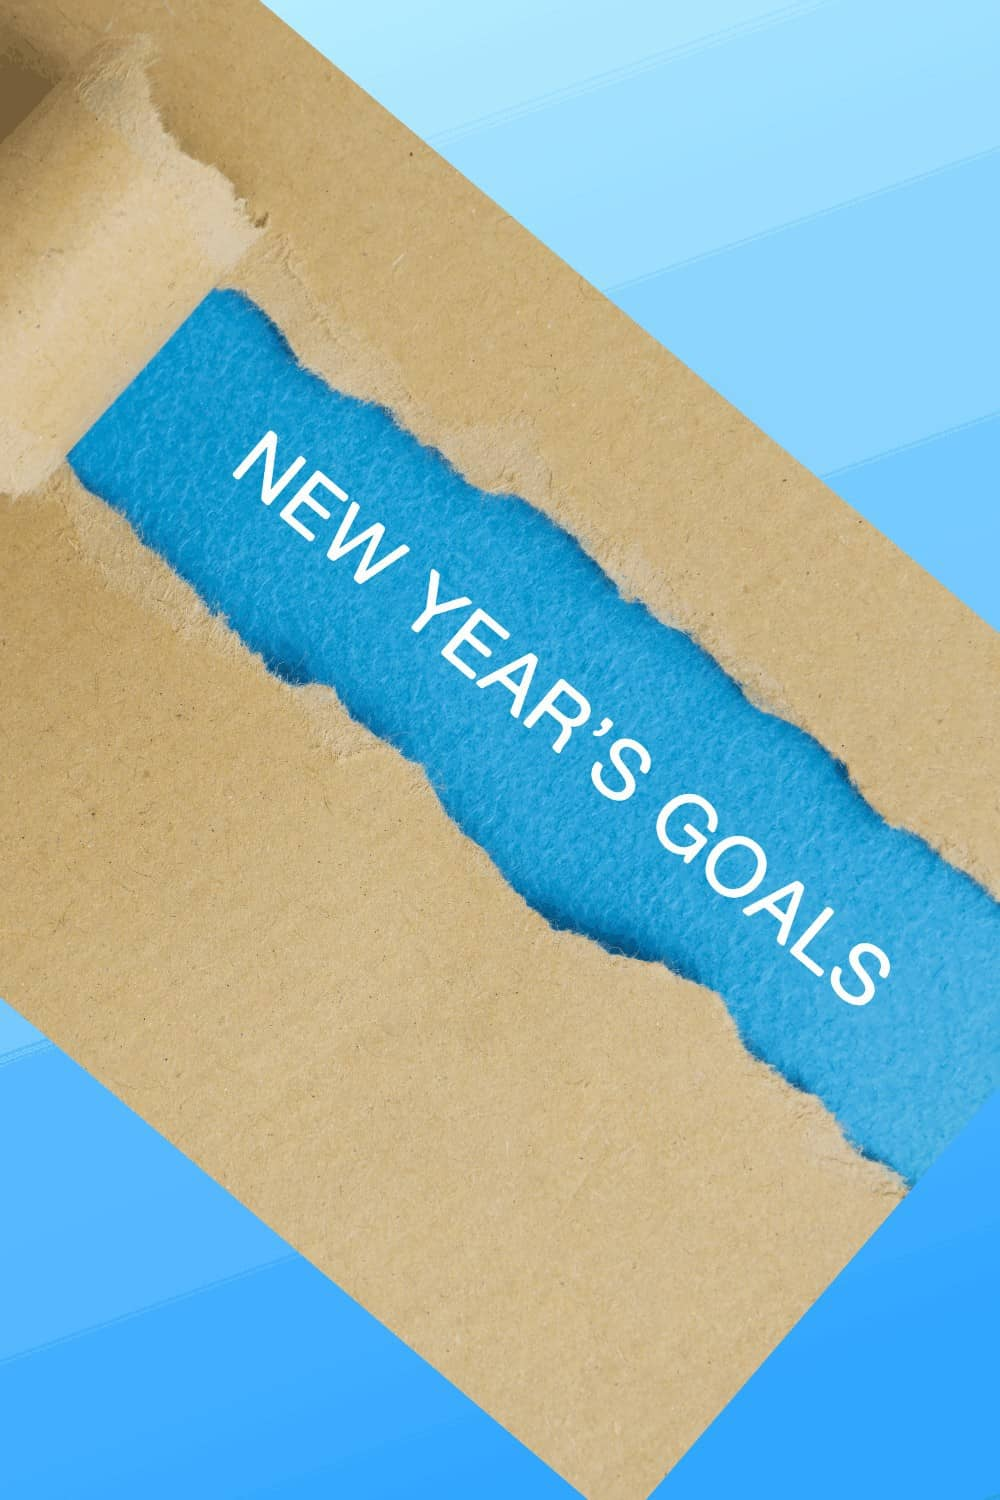 embrace your goals again during the new normal